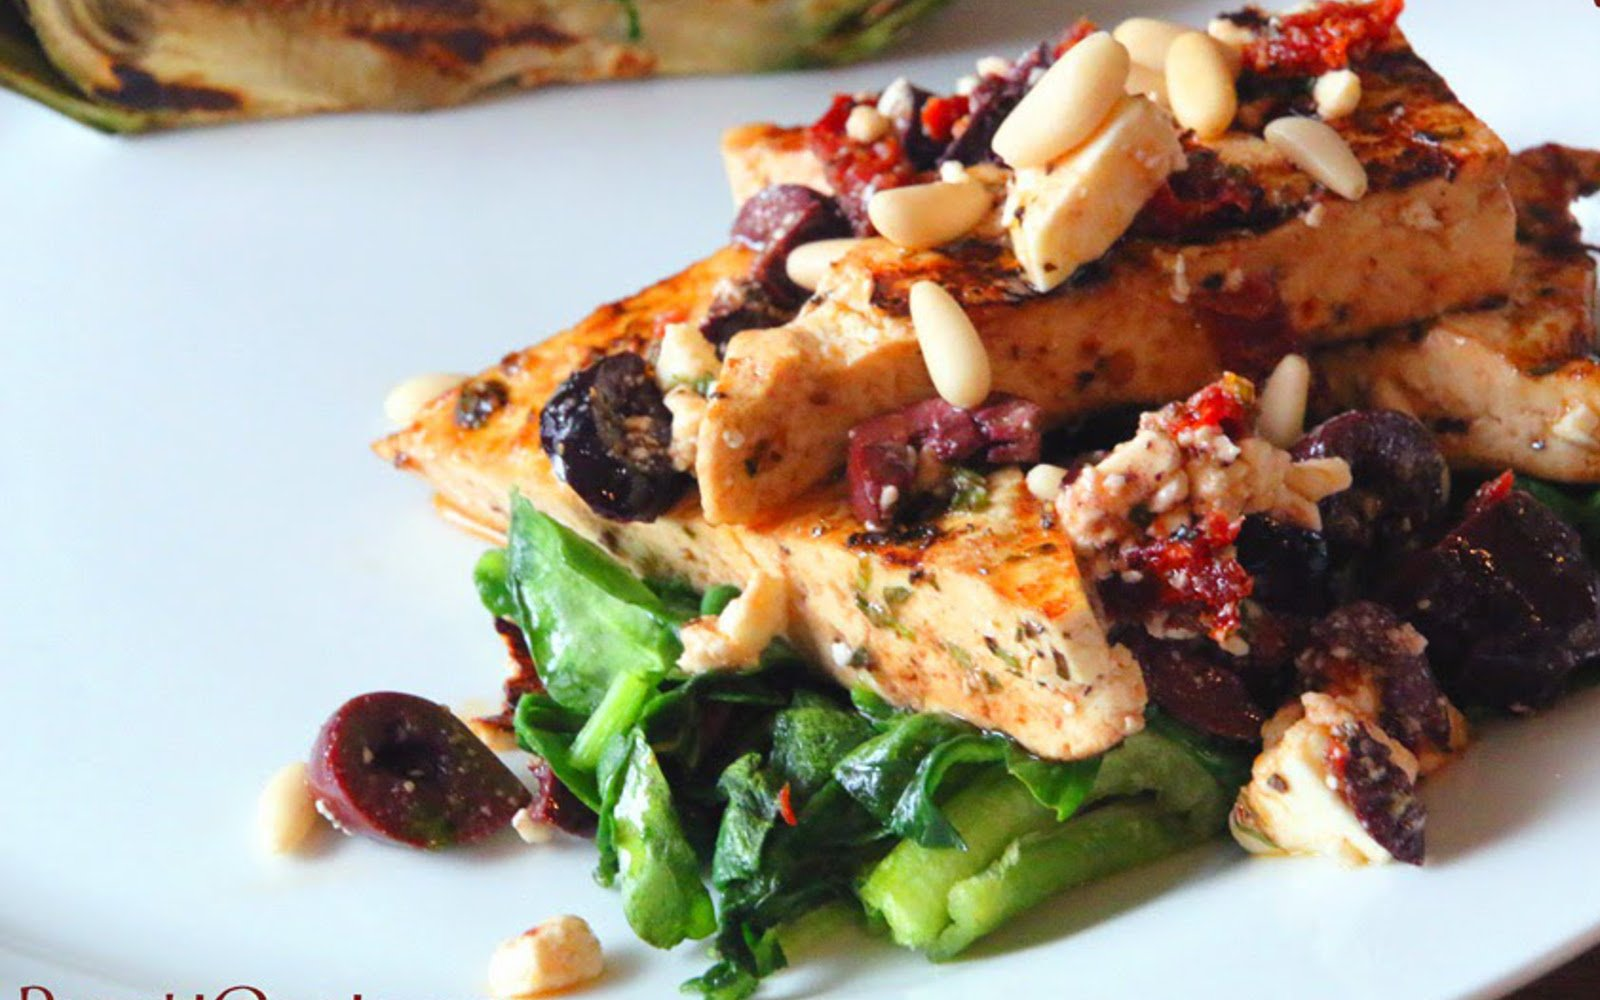 Mediterranean Tofu Steaks [Vegan, Gluten-Free] over bed of spinach with dairy-free feta and pine nut topping